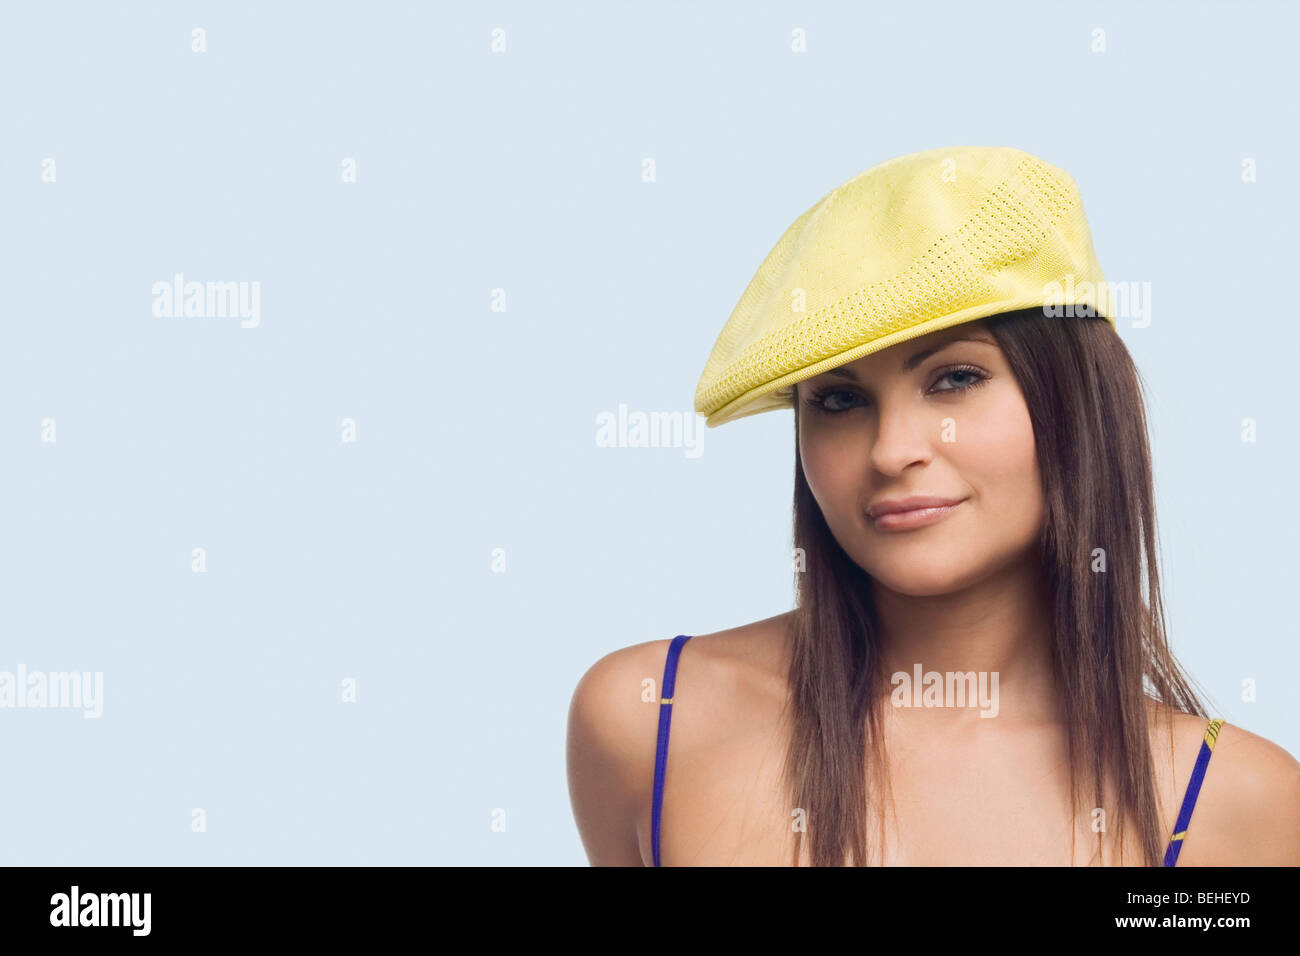 f0aa69b87af00 Portrait of a young woman wearing a flat cap and smirking Stock ...